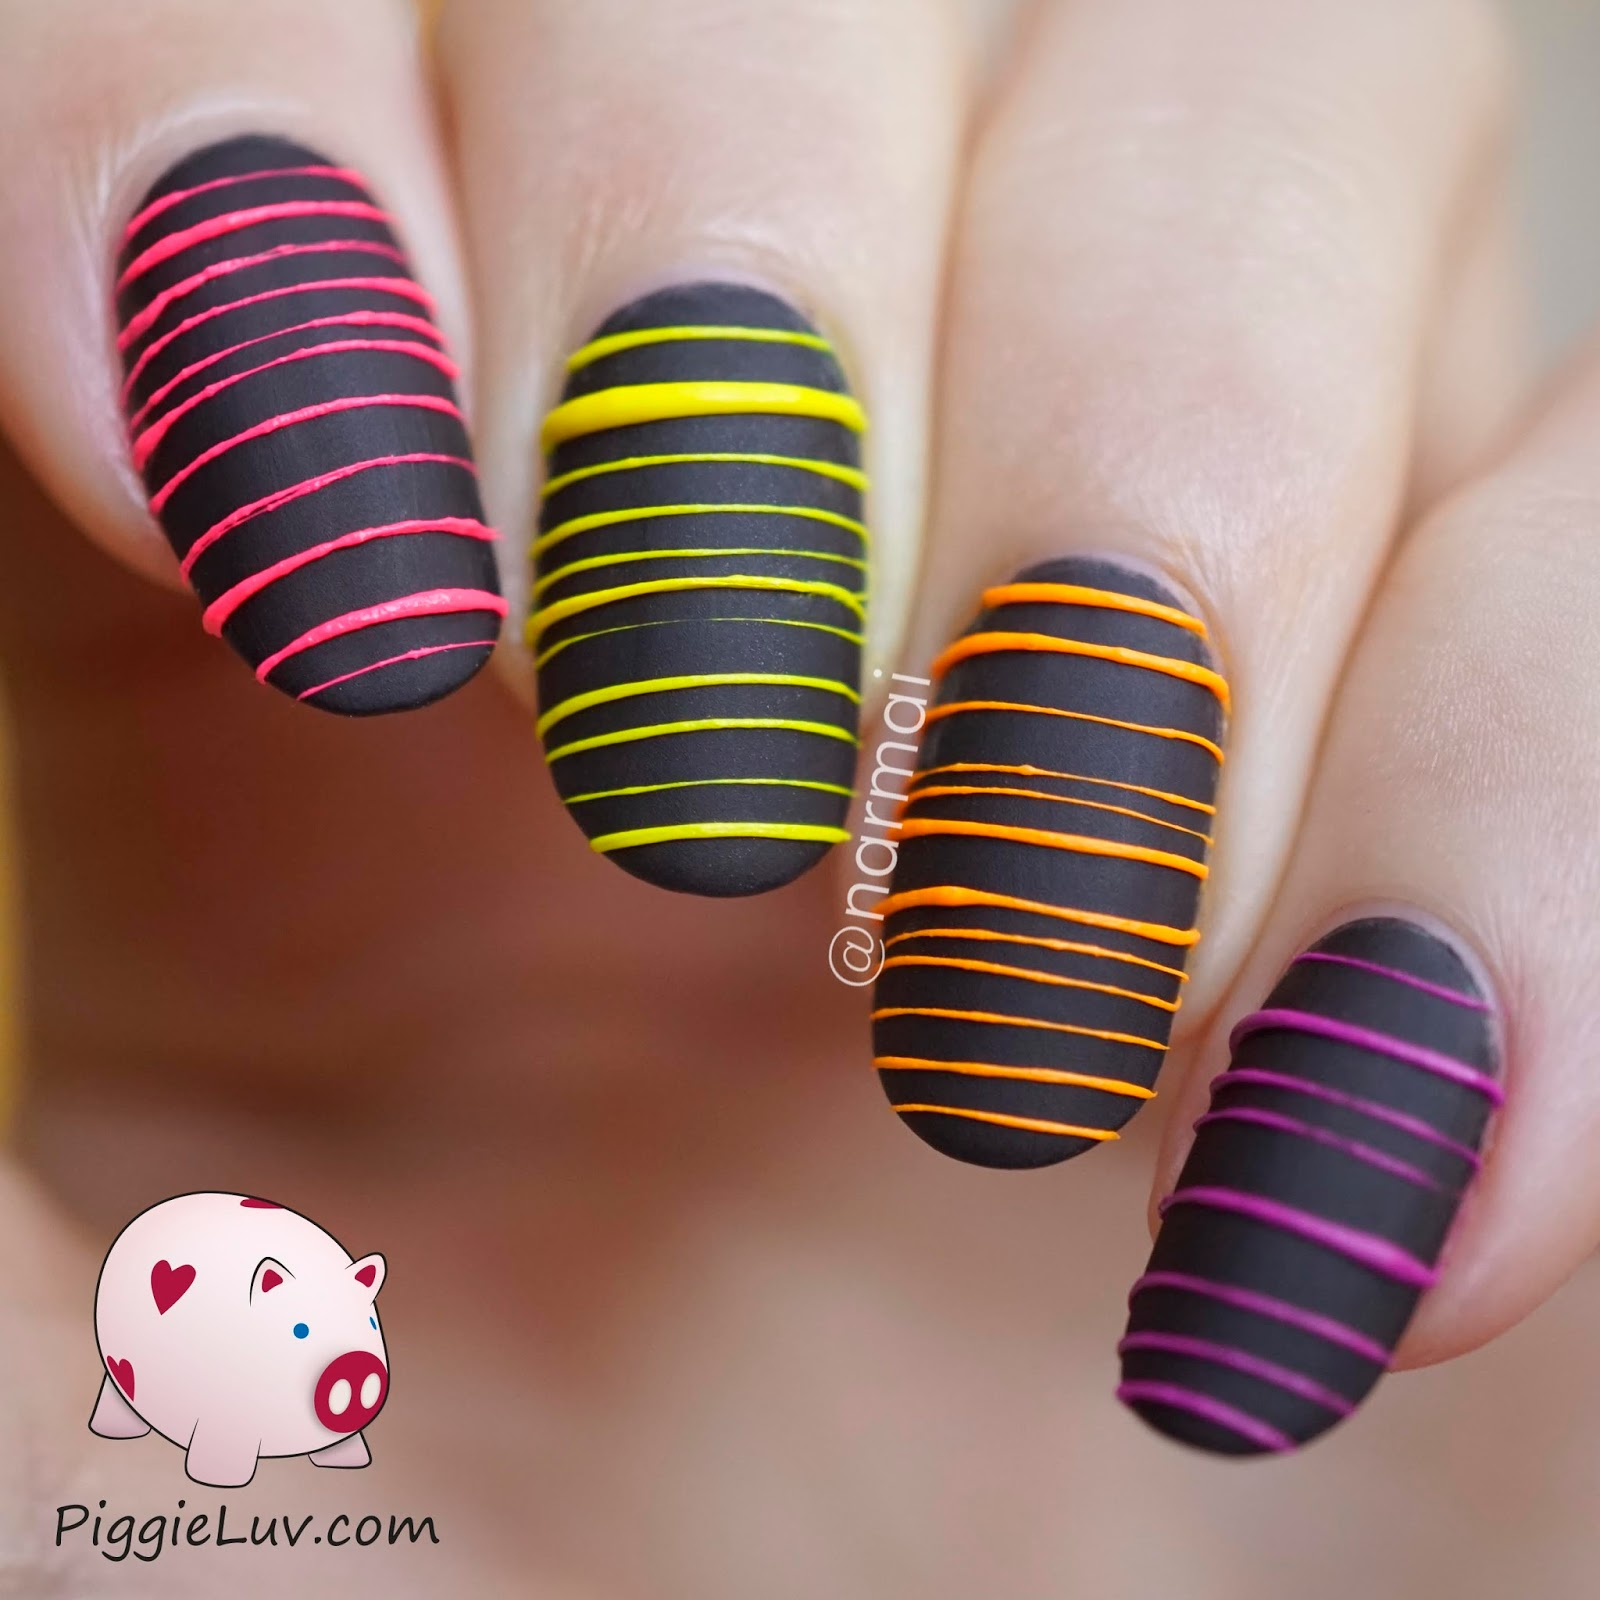 Piggieluv Glow In The Dark Sugar Spun Nail Art Video Tutorial